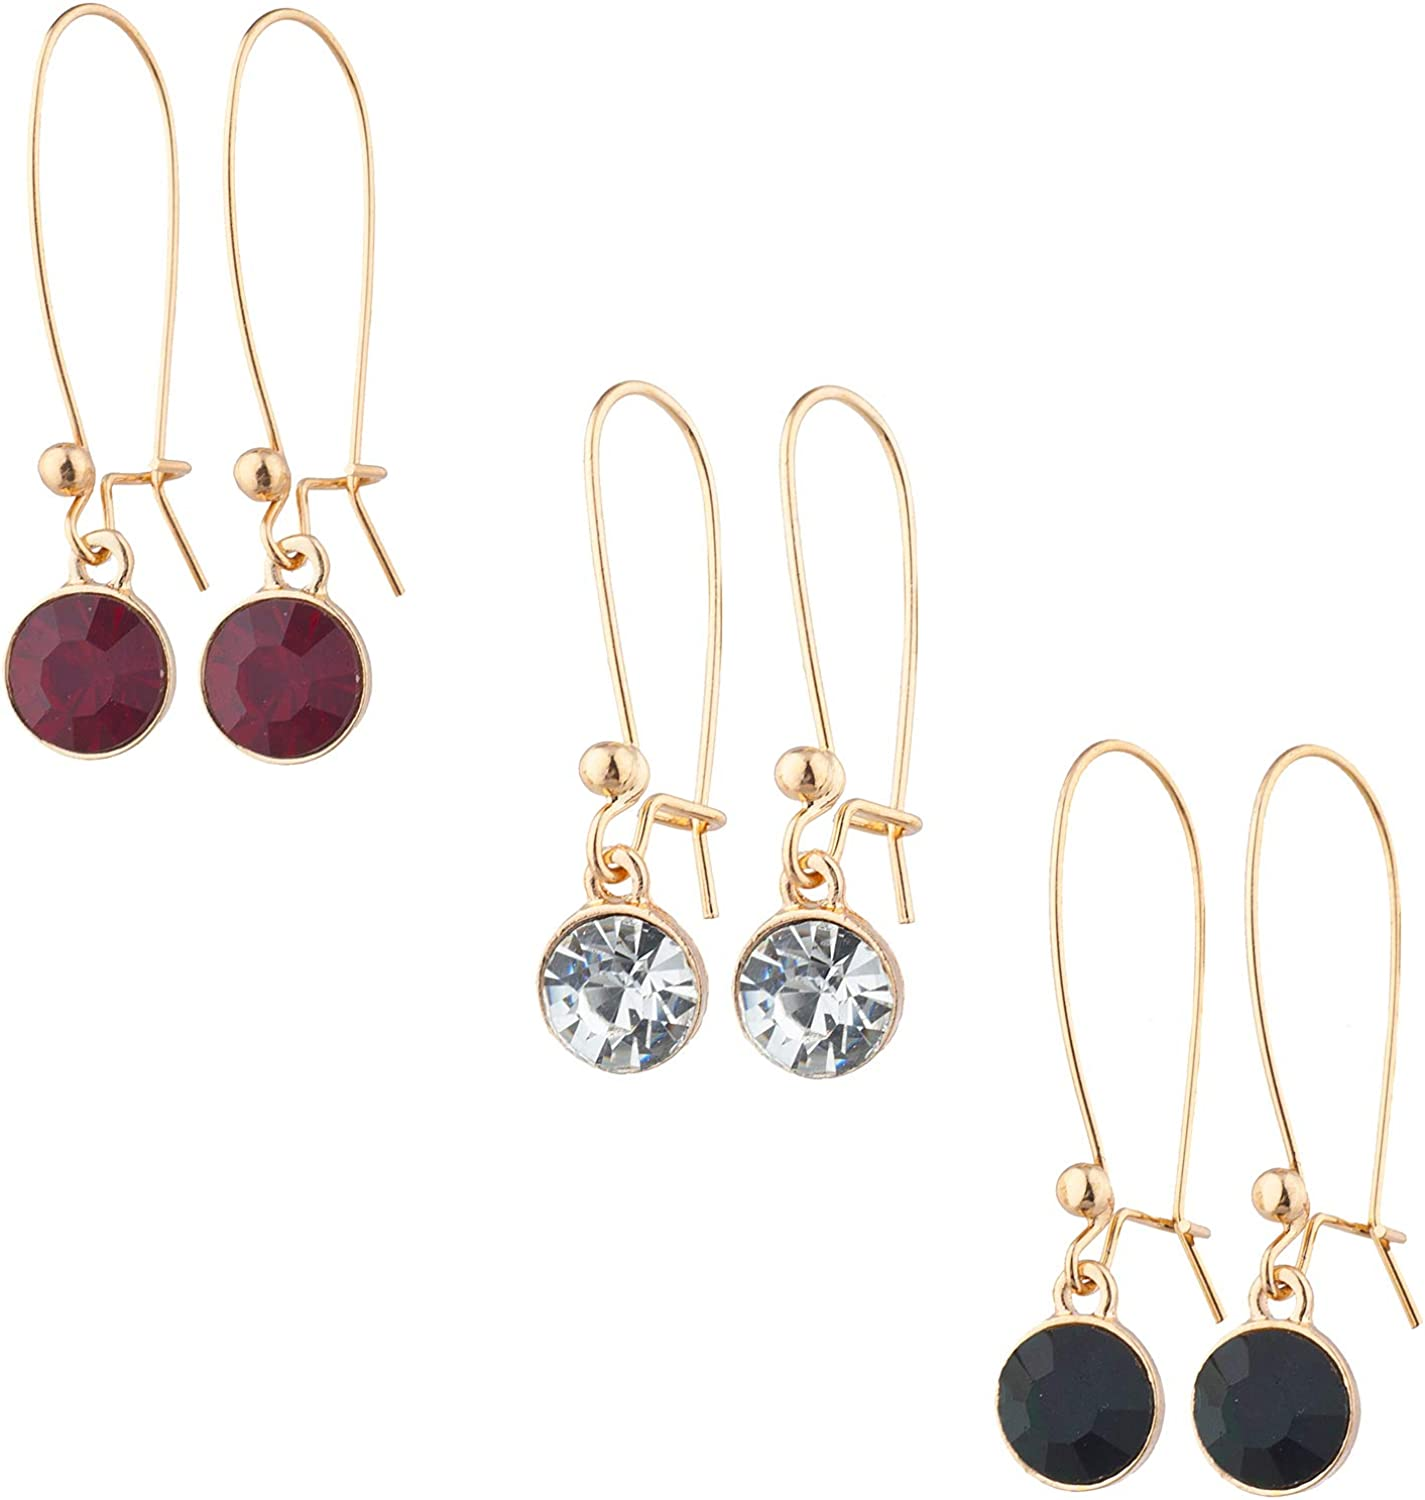 Lux Accessories Gold Tone Red Crystal Black Rhinestone Earrings Set of 3